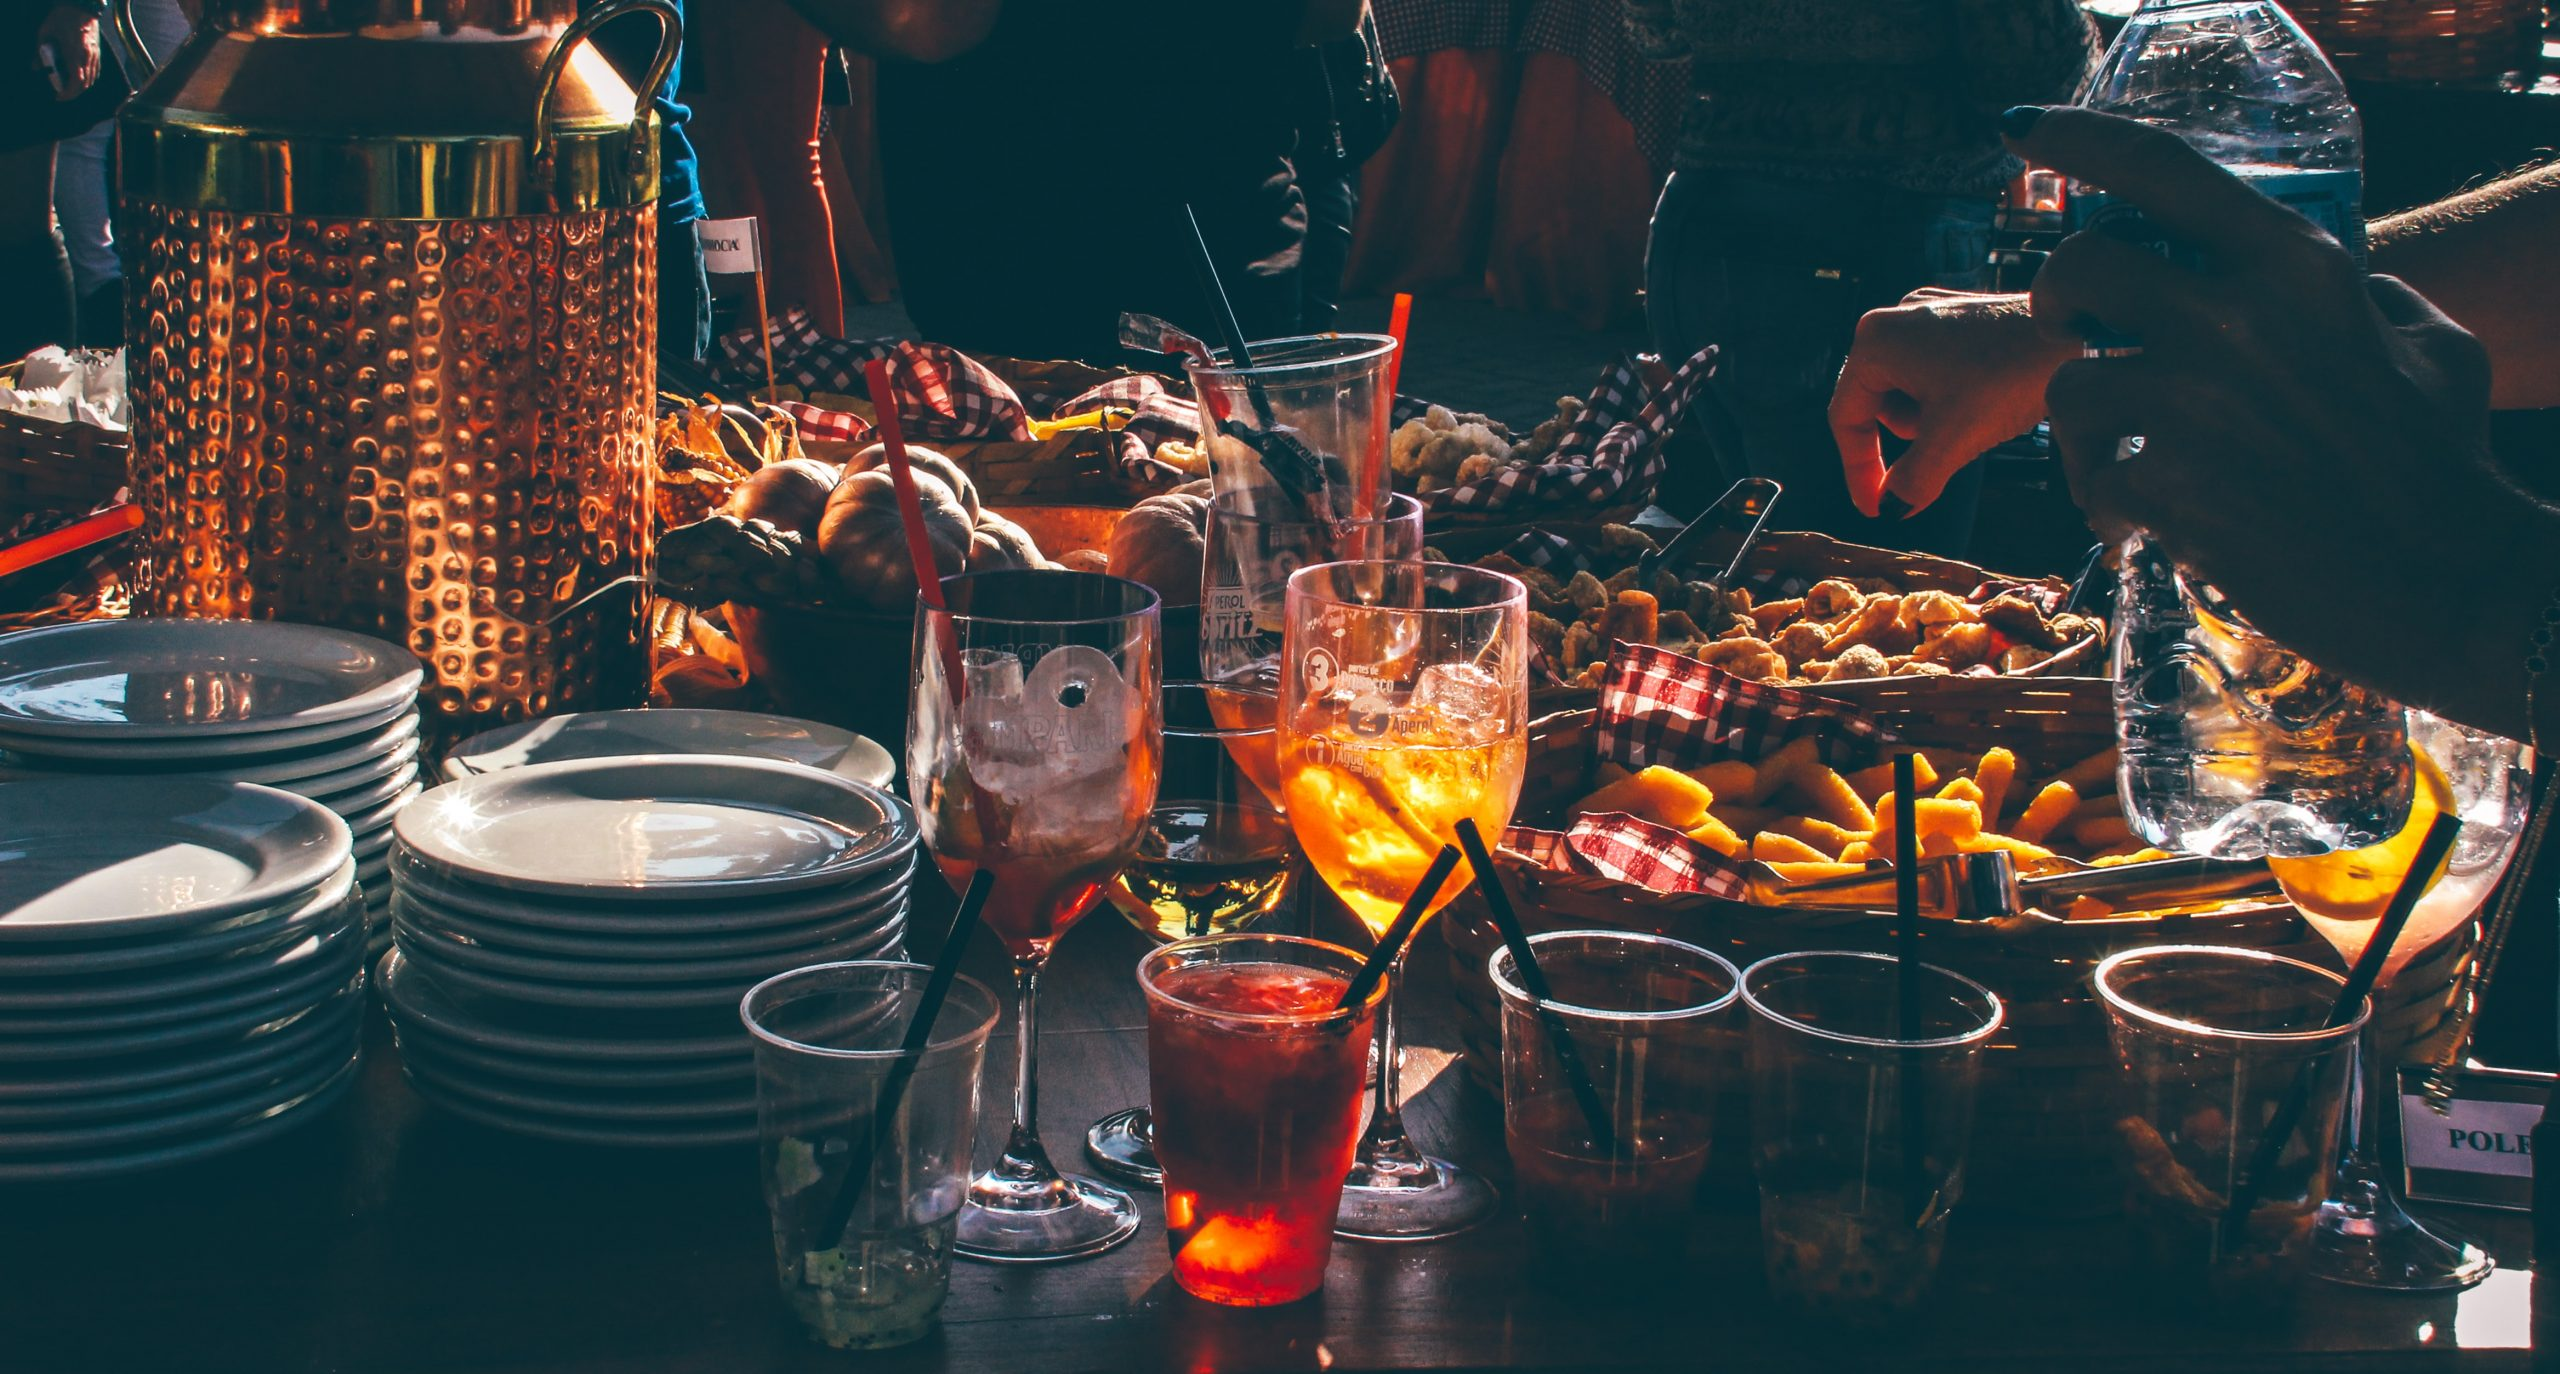 food and drinks on a table at an evening party